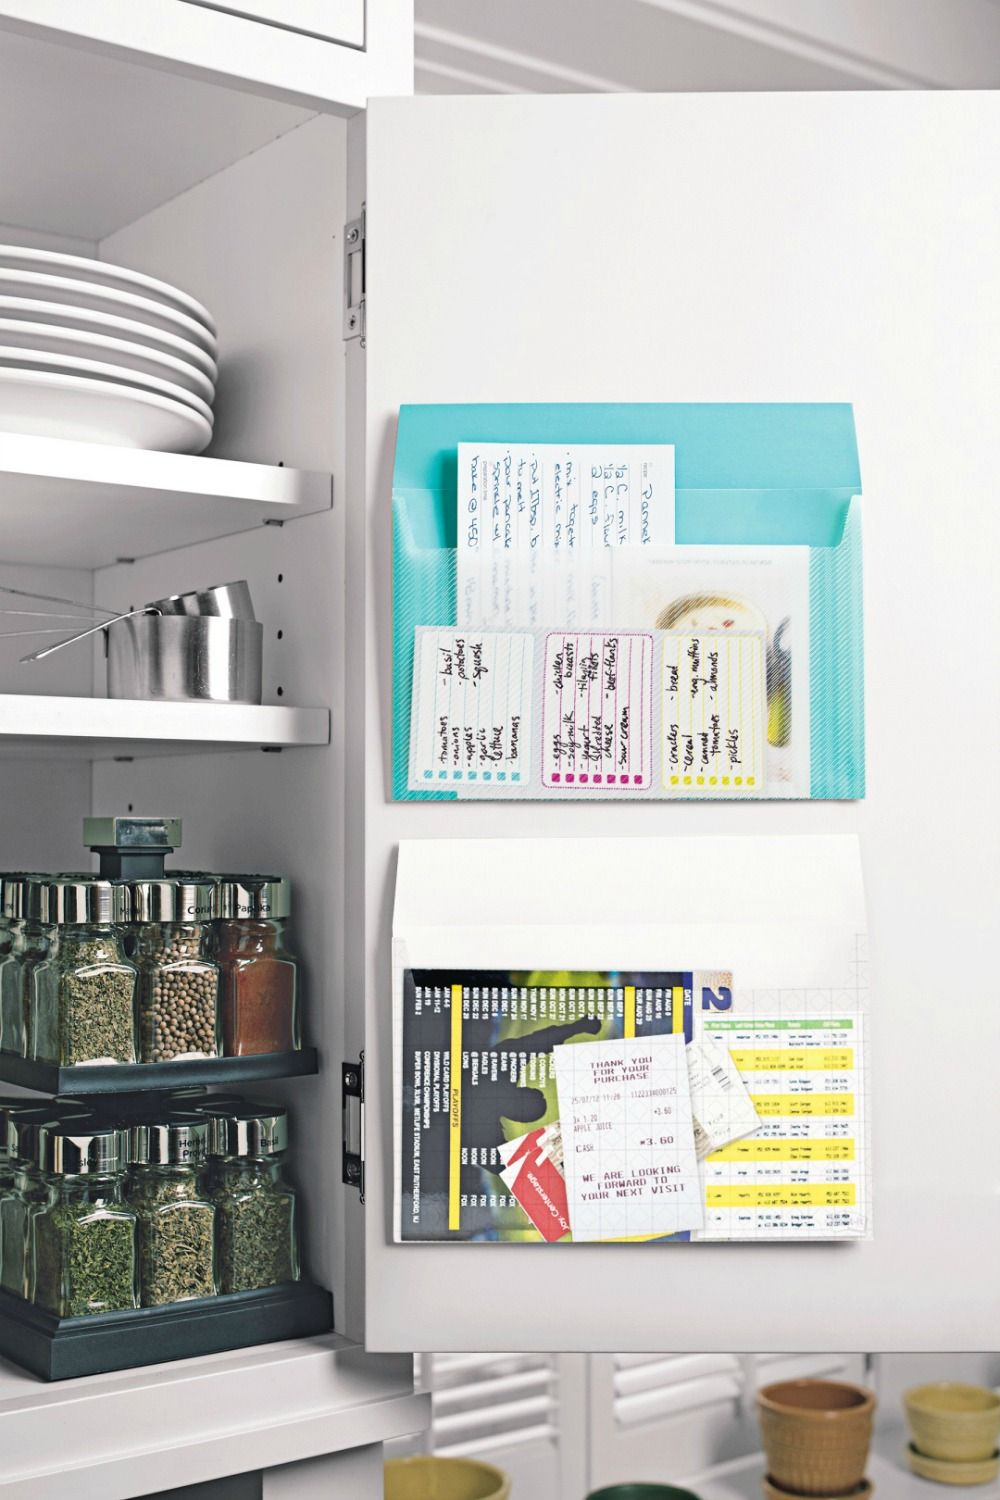 Home Organization - Organizing Ideas For Your Home